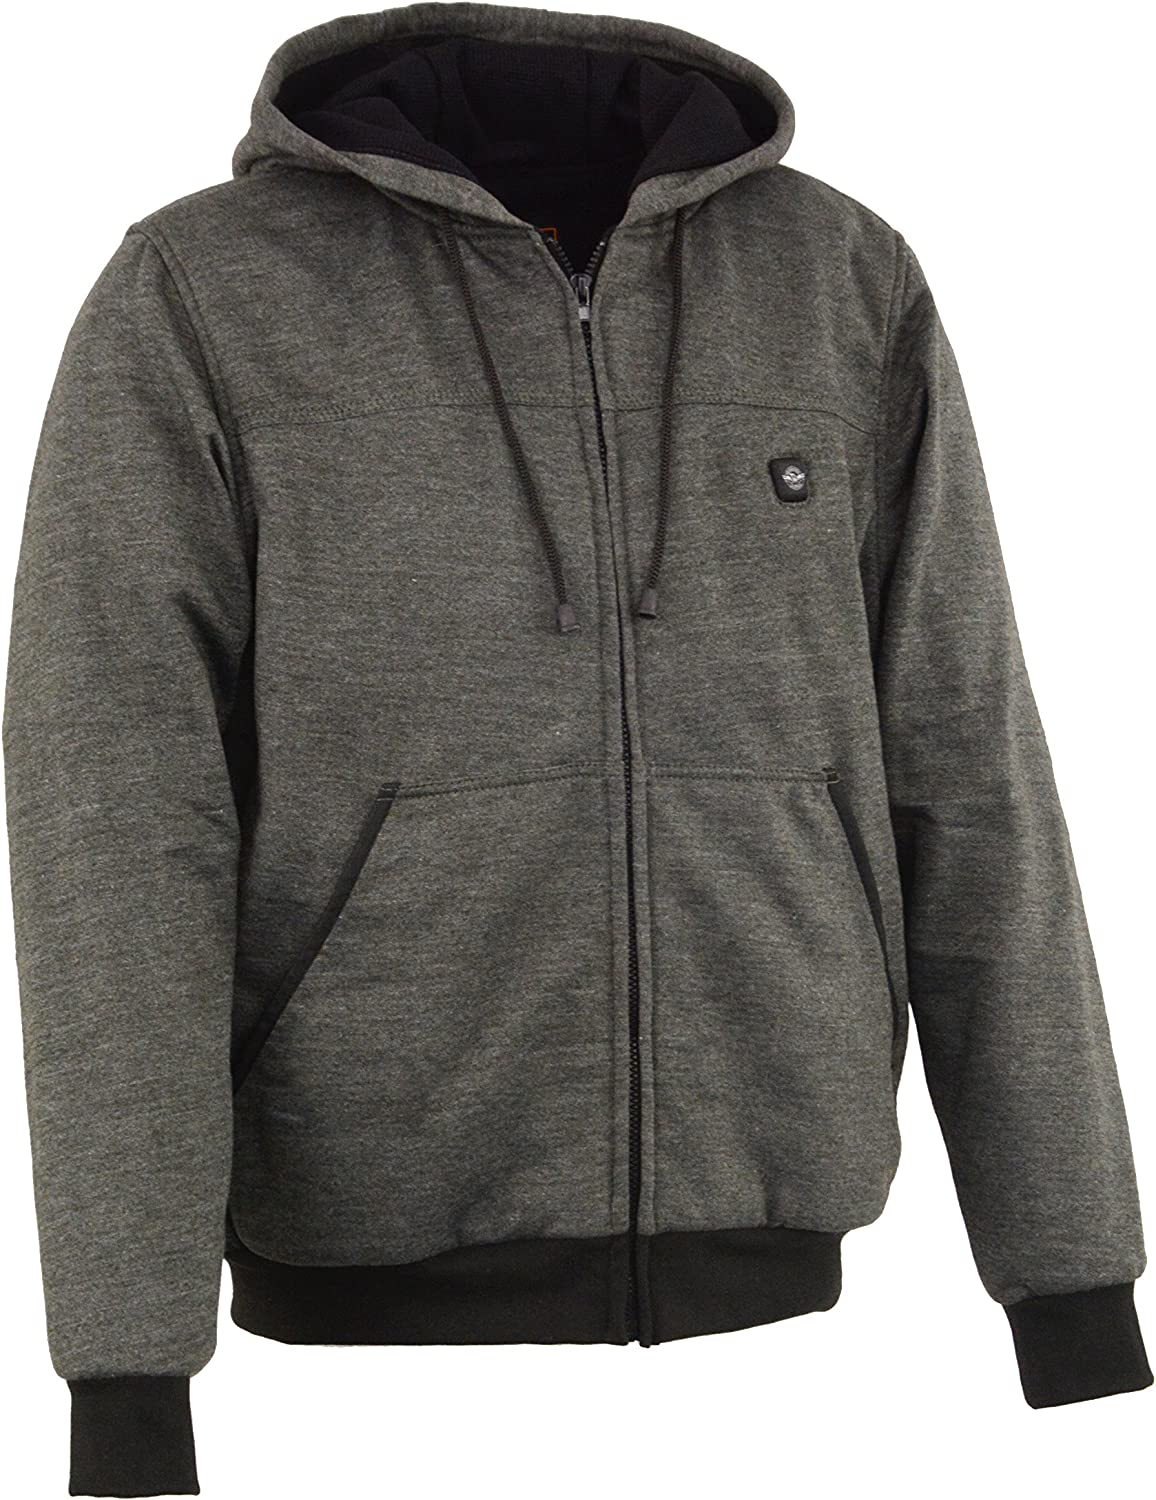 Milwaukee Performance-Mens Heated Hoodie w//Front/&Back Heating Elements-BATTERY PACK INCLUDED-BLACK-3X-LARGE